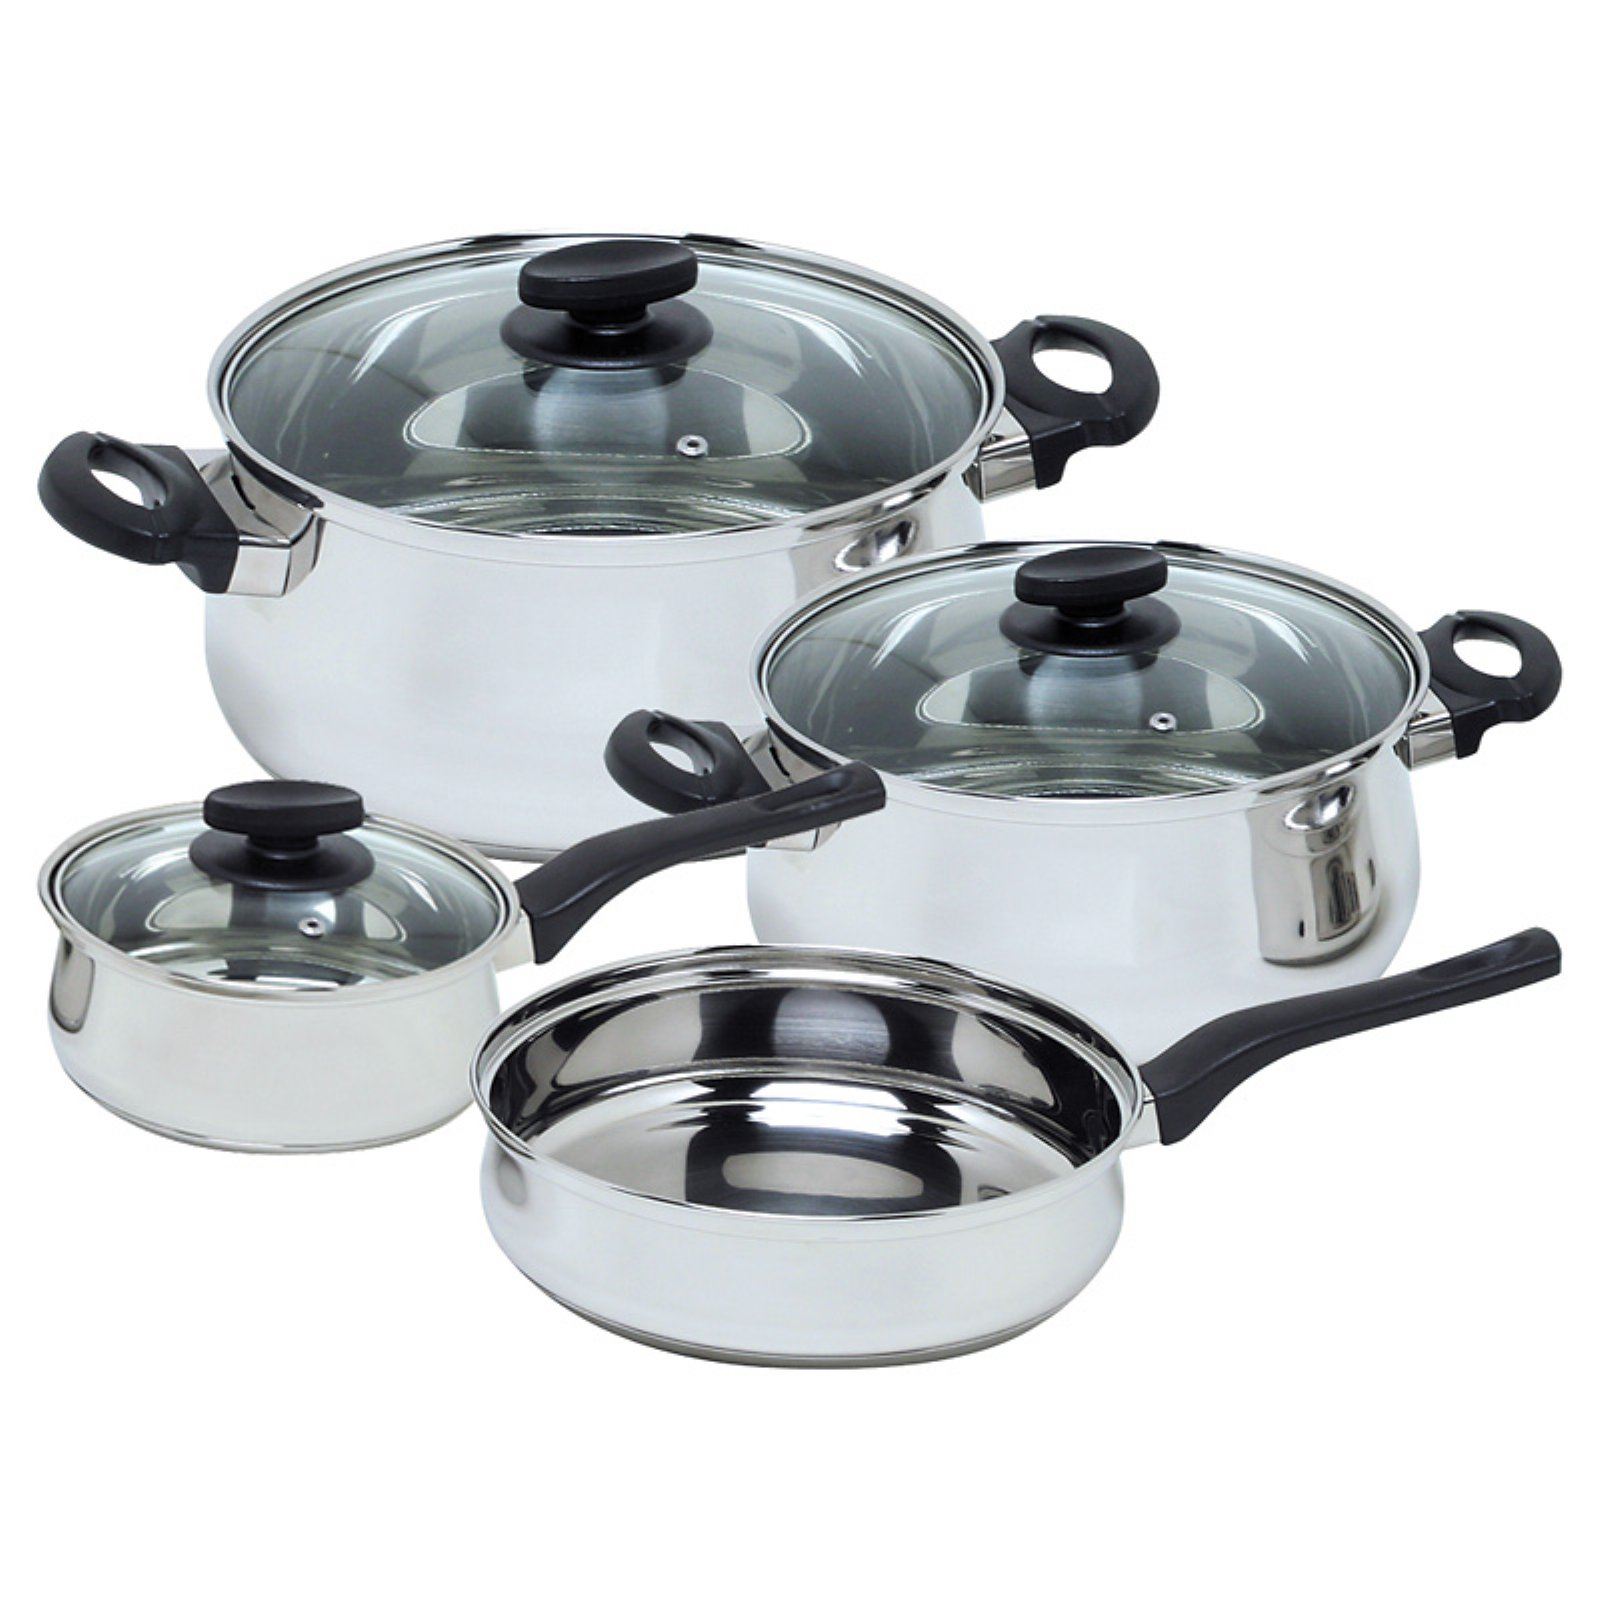 Magefesa Deliss 7 pcs. Stainless Steel Cookware Set